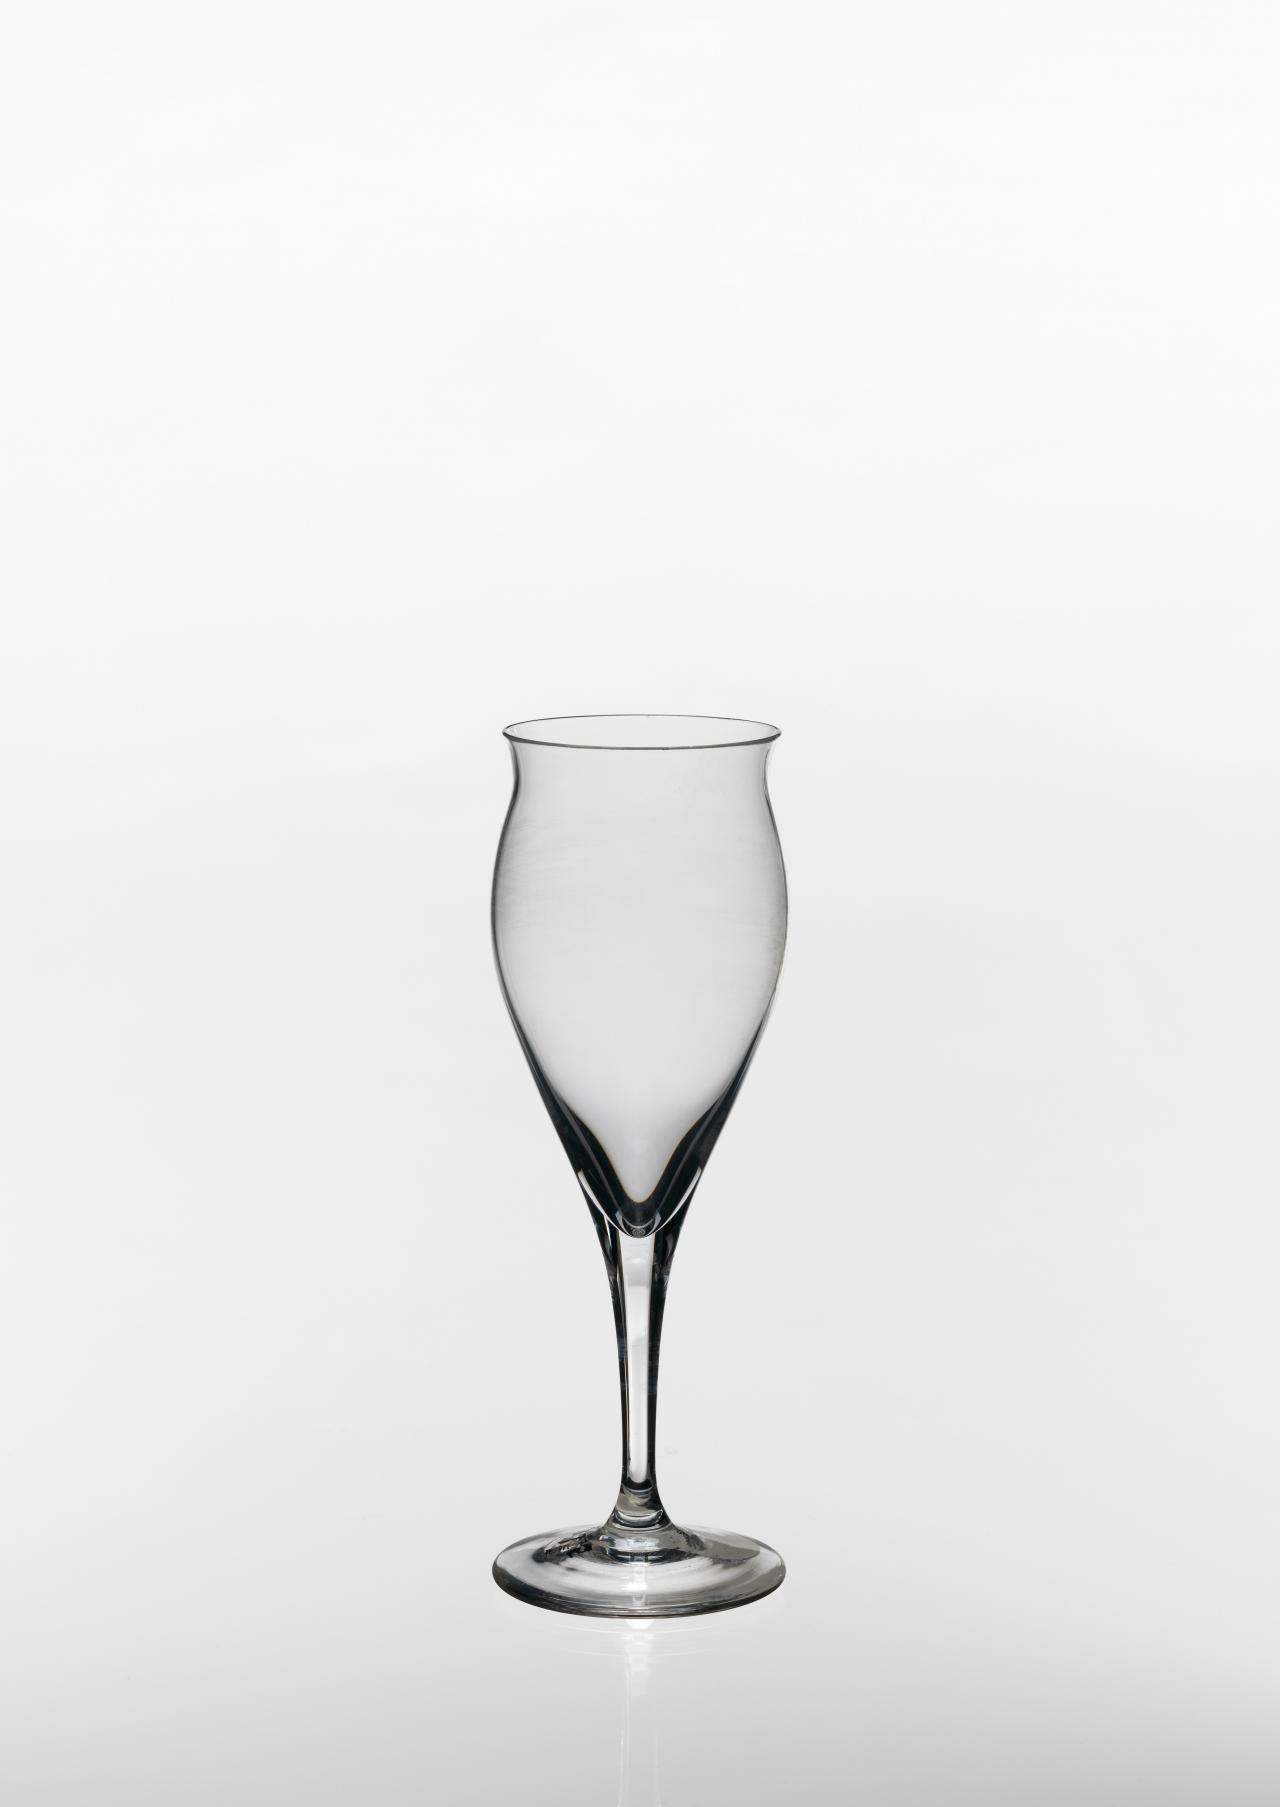 LIQUER GLASS